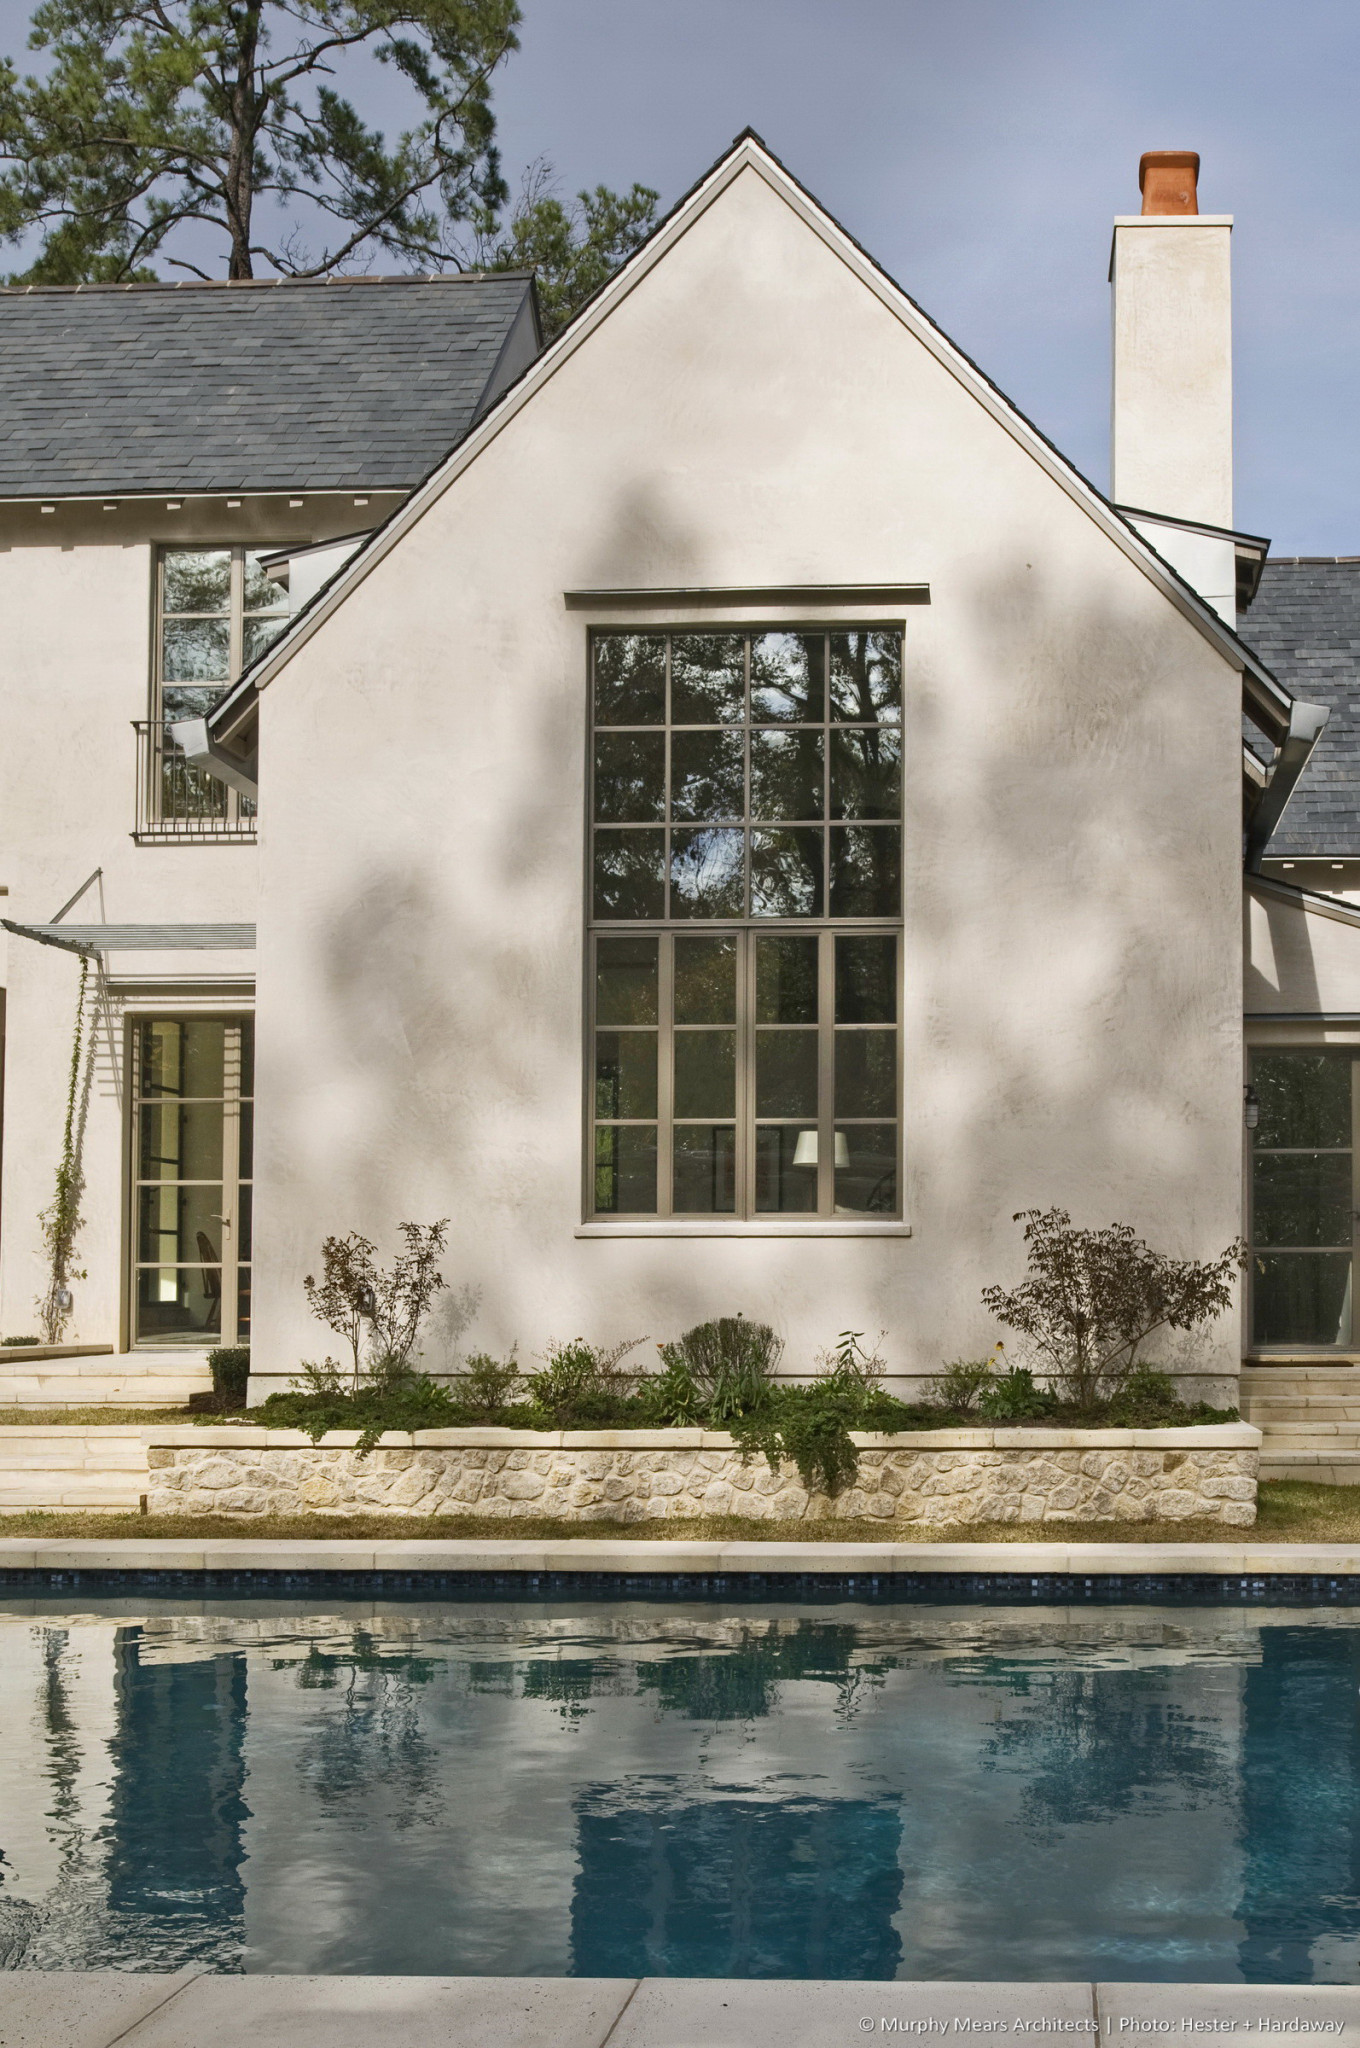 Lindenwood Residence - The large window in the Family Room overlooking the pool and backyard.